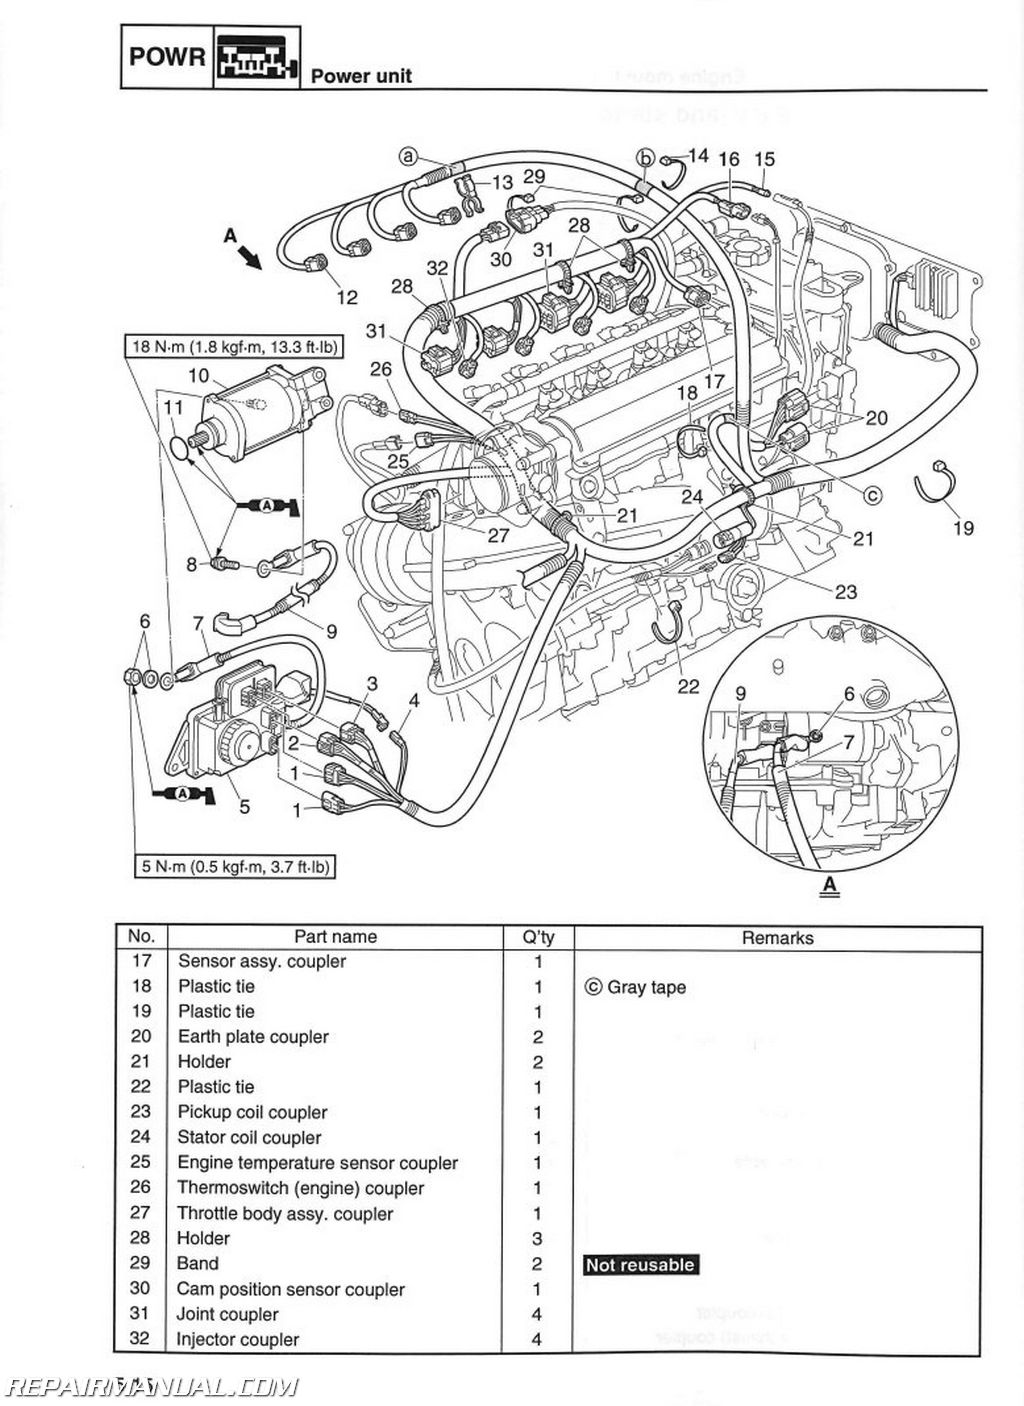 Mtd Wiring Diagram furthermore 2010 2014 Yamaha Vx1100 Cruiser Deluxe 2015 V1 Sport Waverunner Service Manual additionally Ls3 Alternator Wiring Diagram furthermore P2020 P2015 Intake Flap Codes 2870358 moreover What Shift Interlock Solenoid Part Number 3256303. on starter solenoid wiring